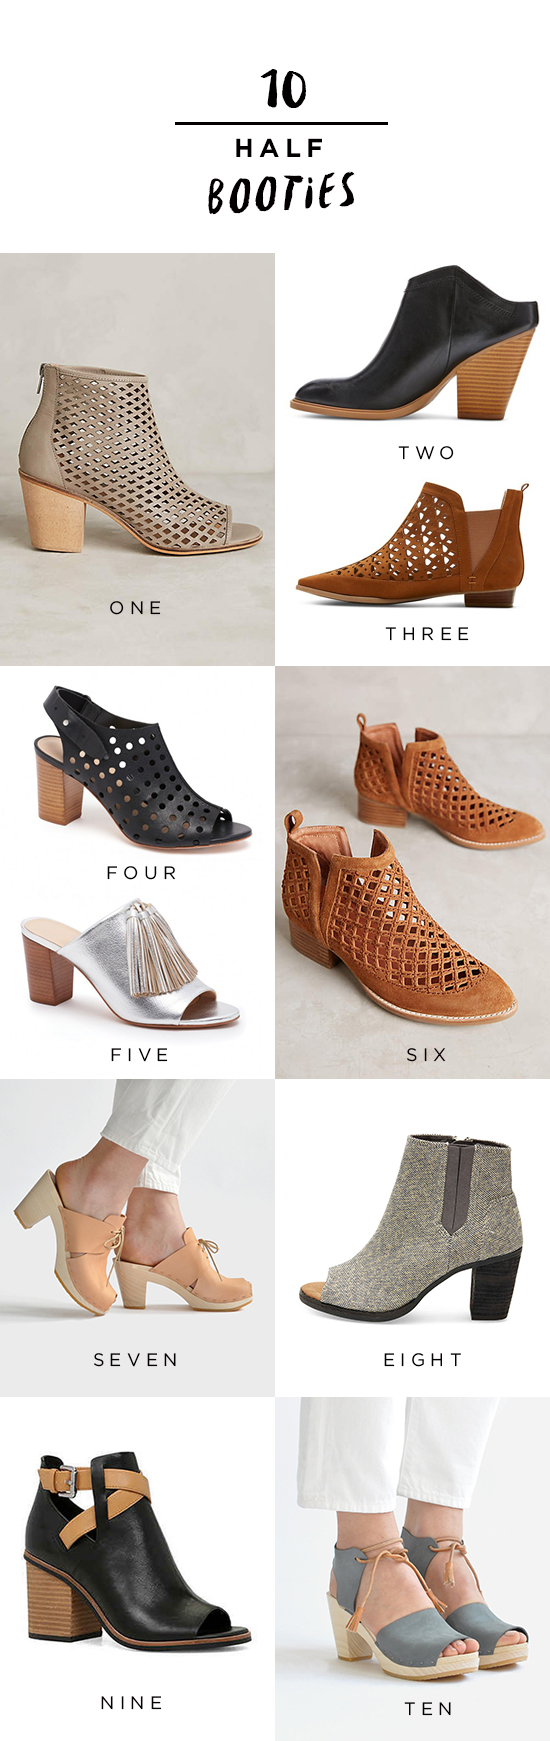 Cut-out-bootie